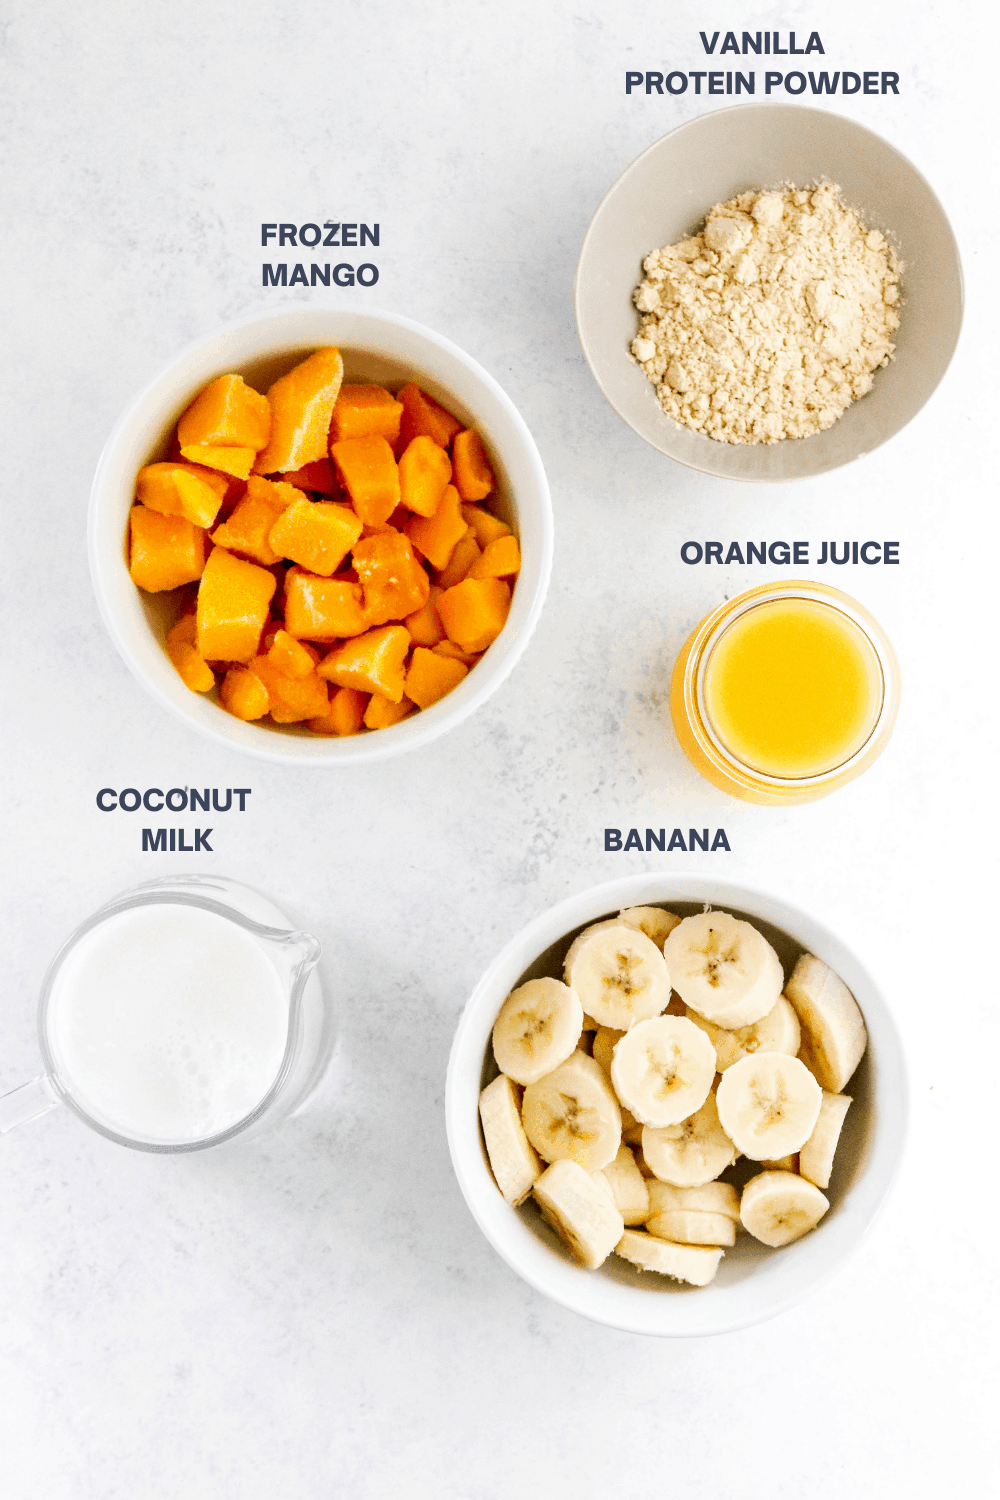 Round bowl filled with white protein powder with a bowl of chopped mango, a glass of orange juice, a glass of milk and a white bowl filled with sliced banana in front of it.